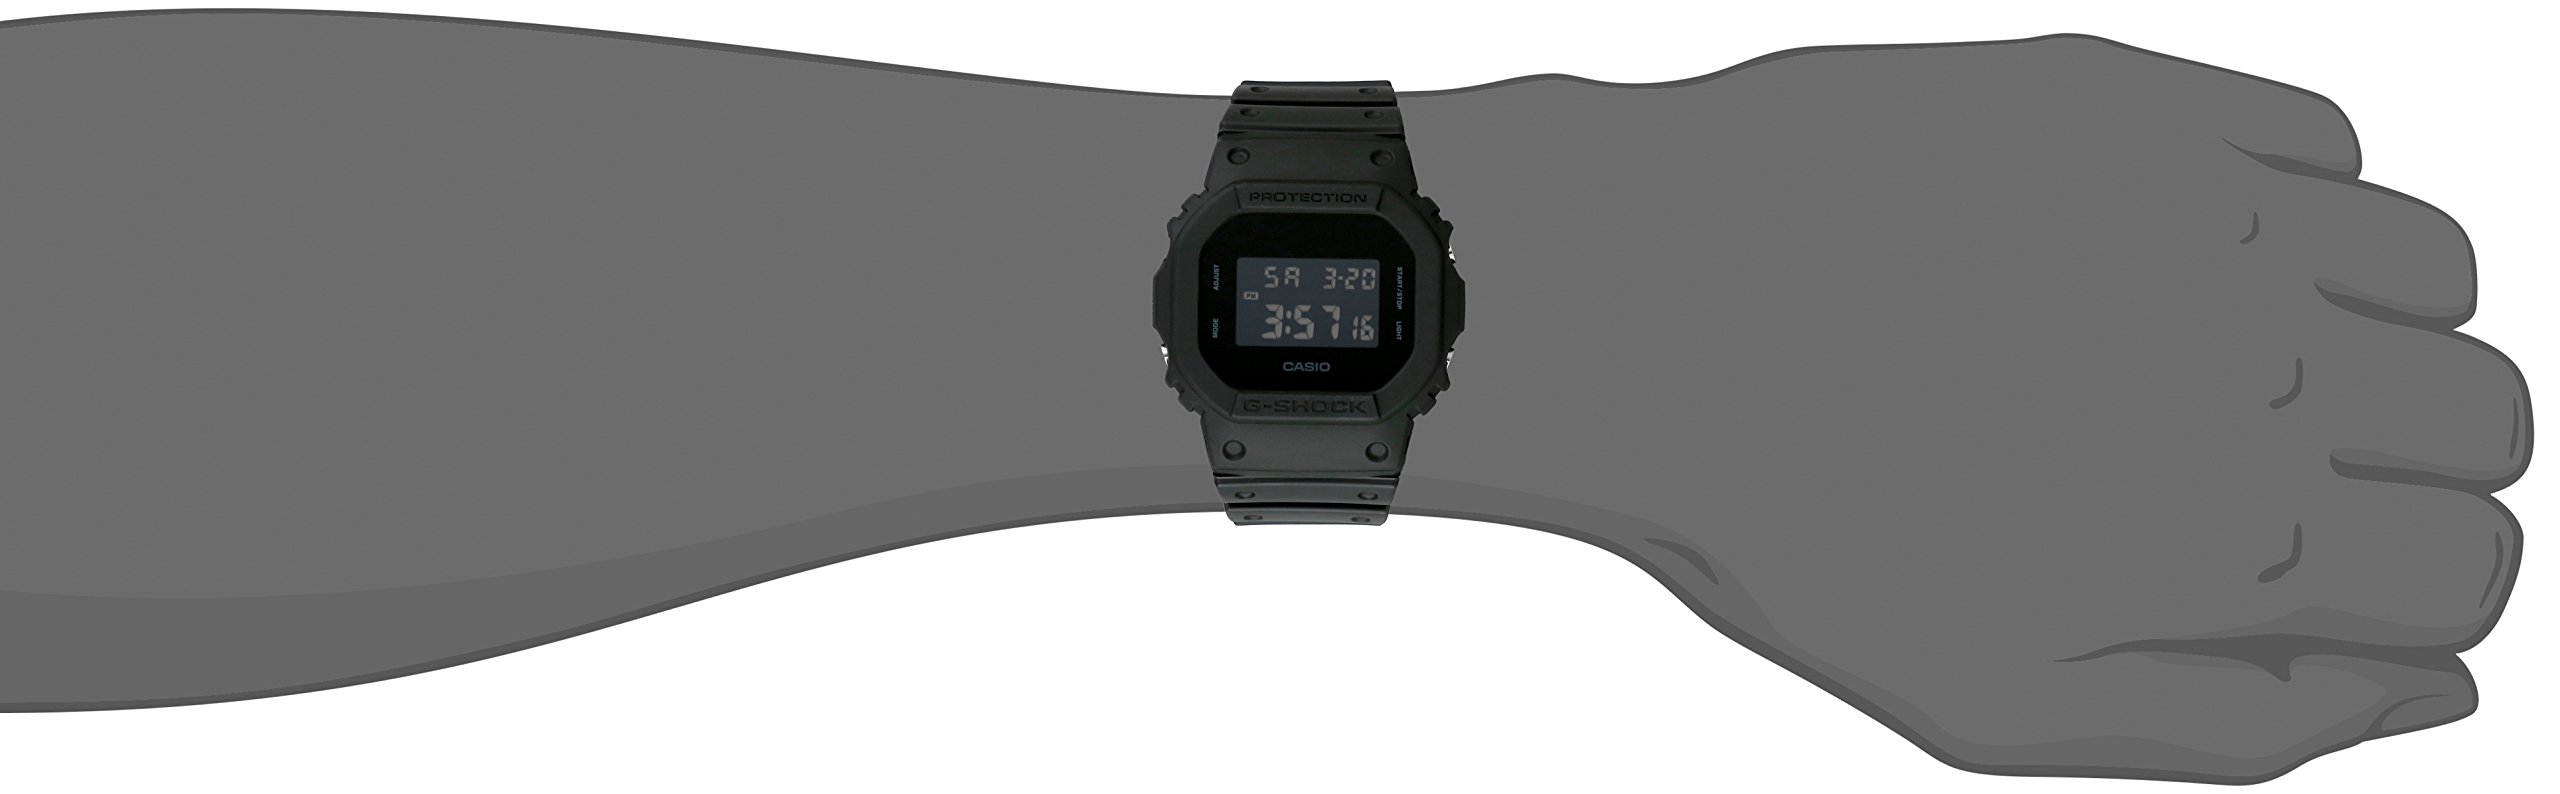 Casio Men's G Shock Quartz Watch with Resin Strap, Black, 30 (Model: DW-5600BB-1CR) by Casio (Image #2)